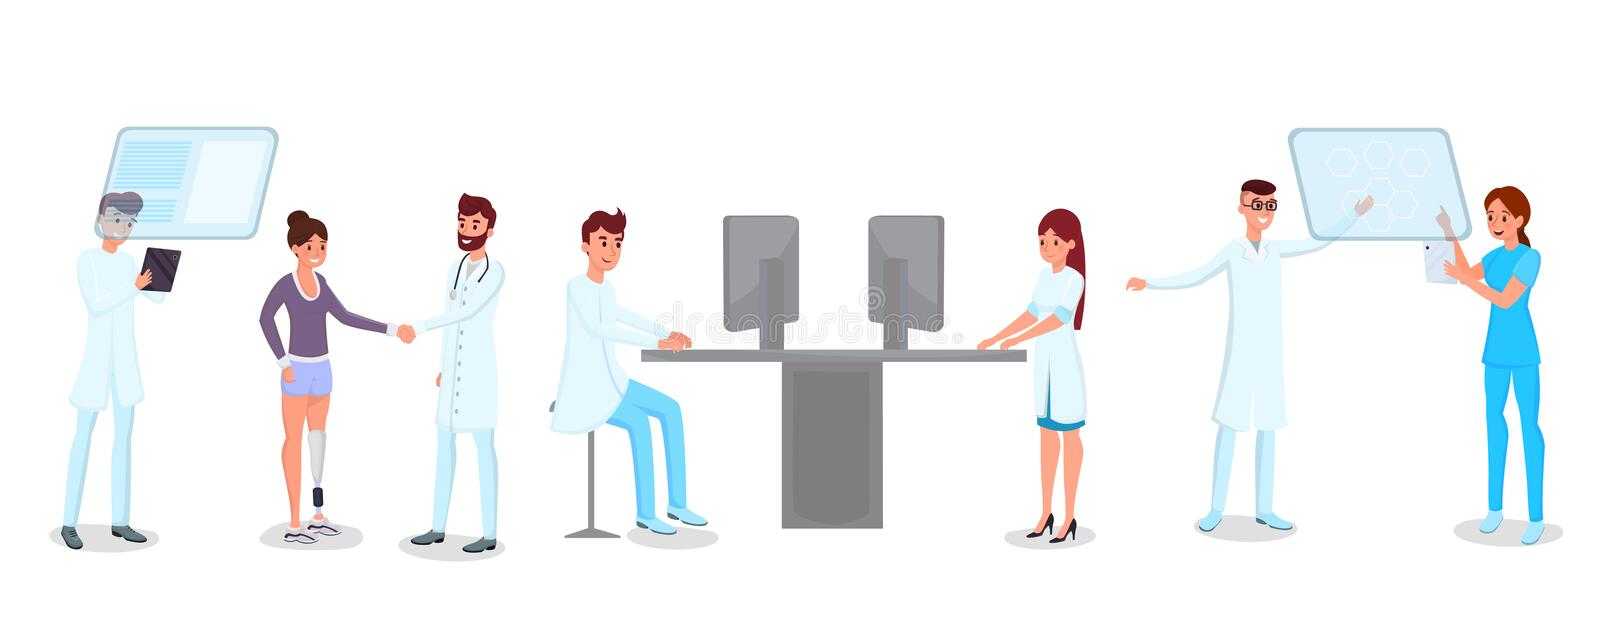 Technology in medicine vector illustrations set. Young doctors, nurses, medics characters. Modern hospital staff working. Technology in medicine vector stock illustration